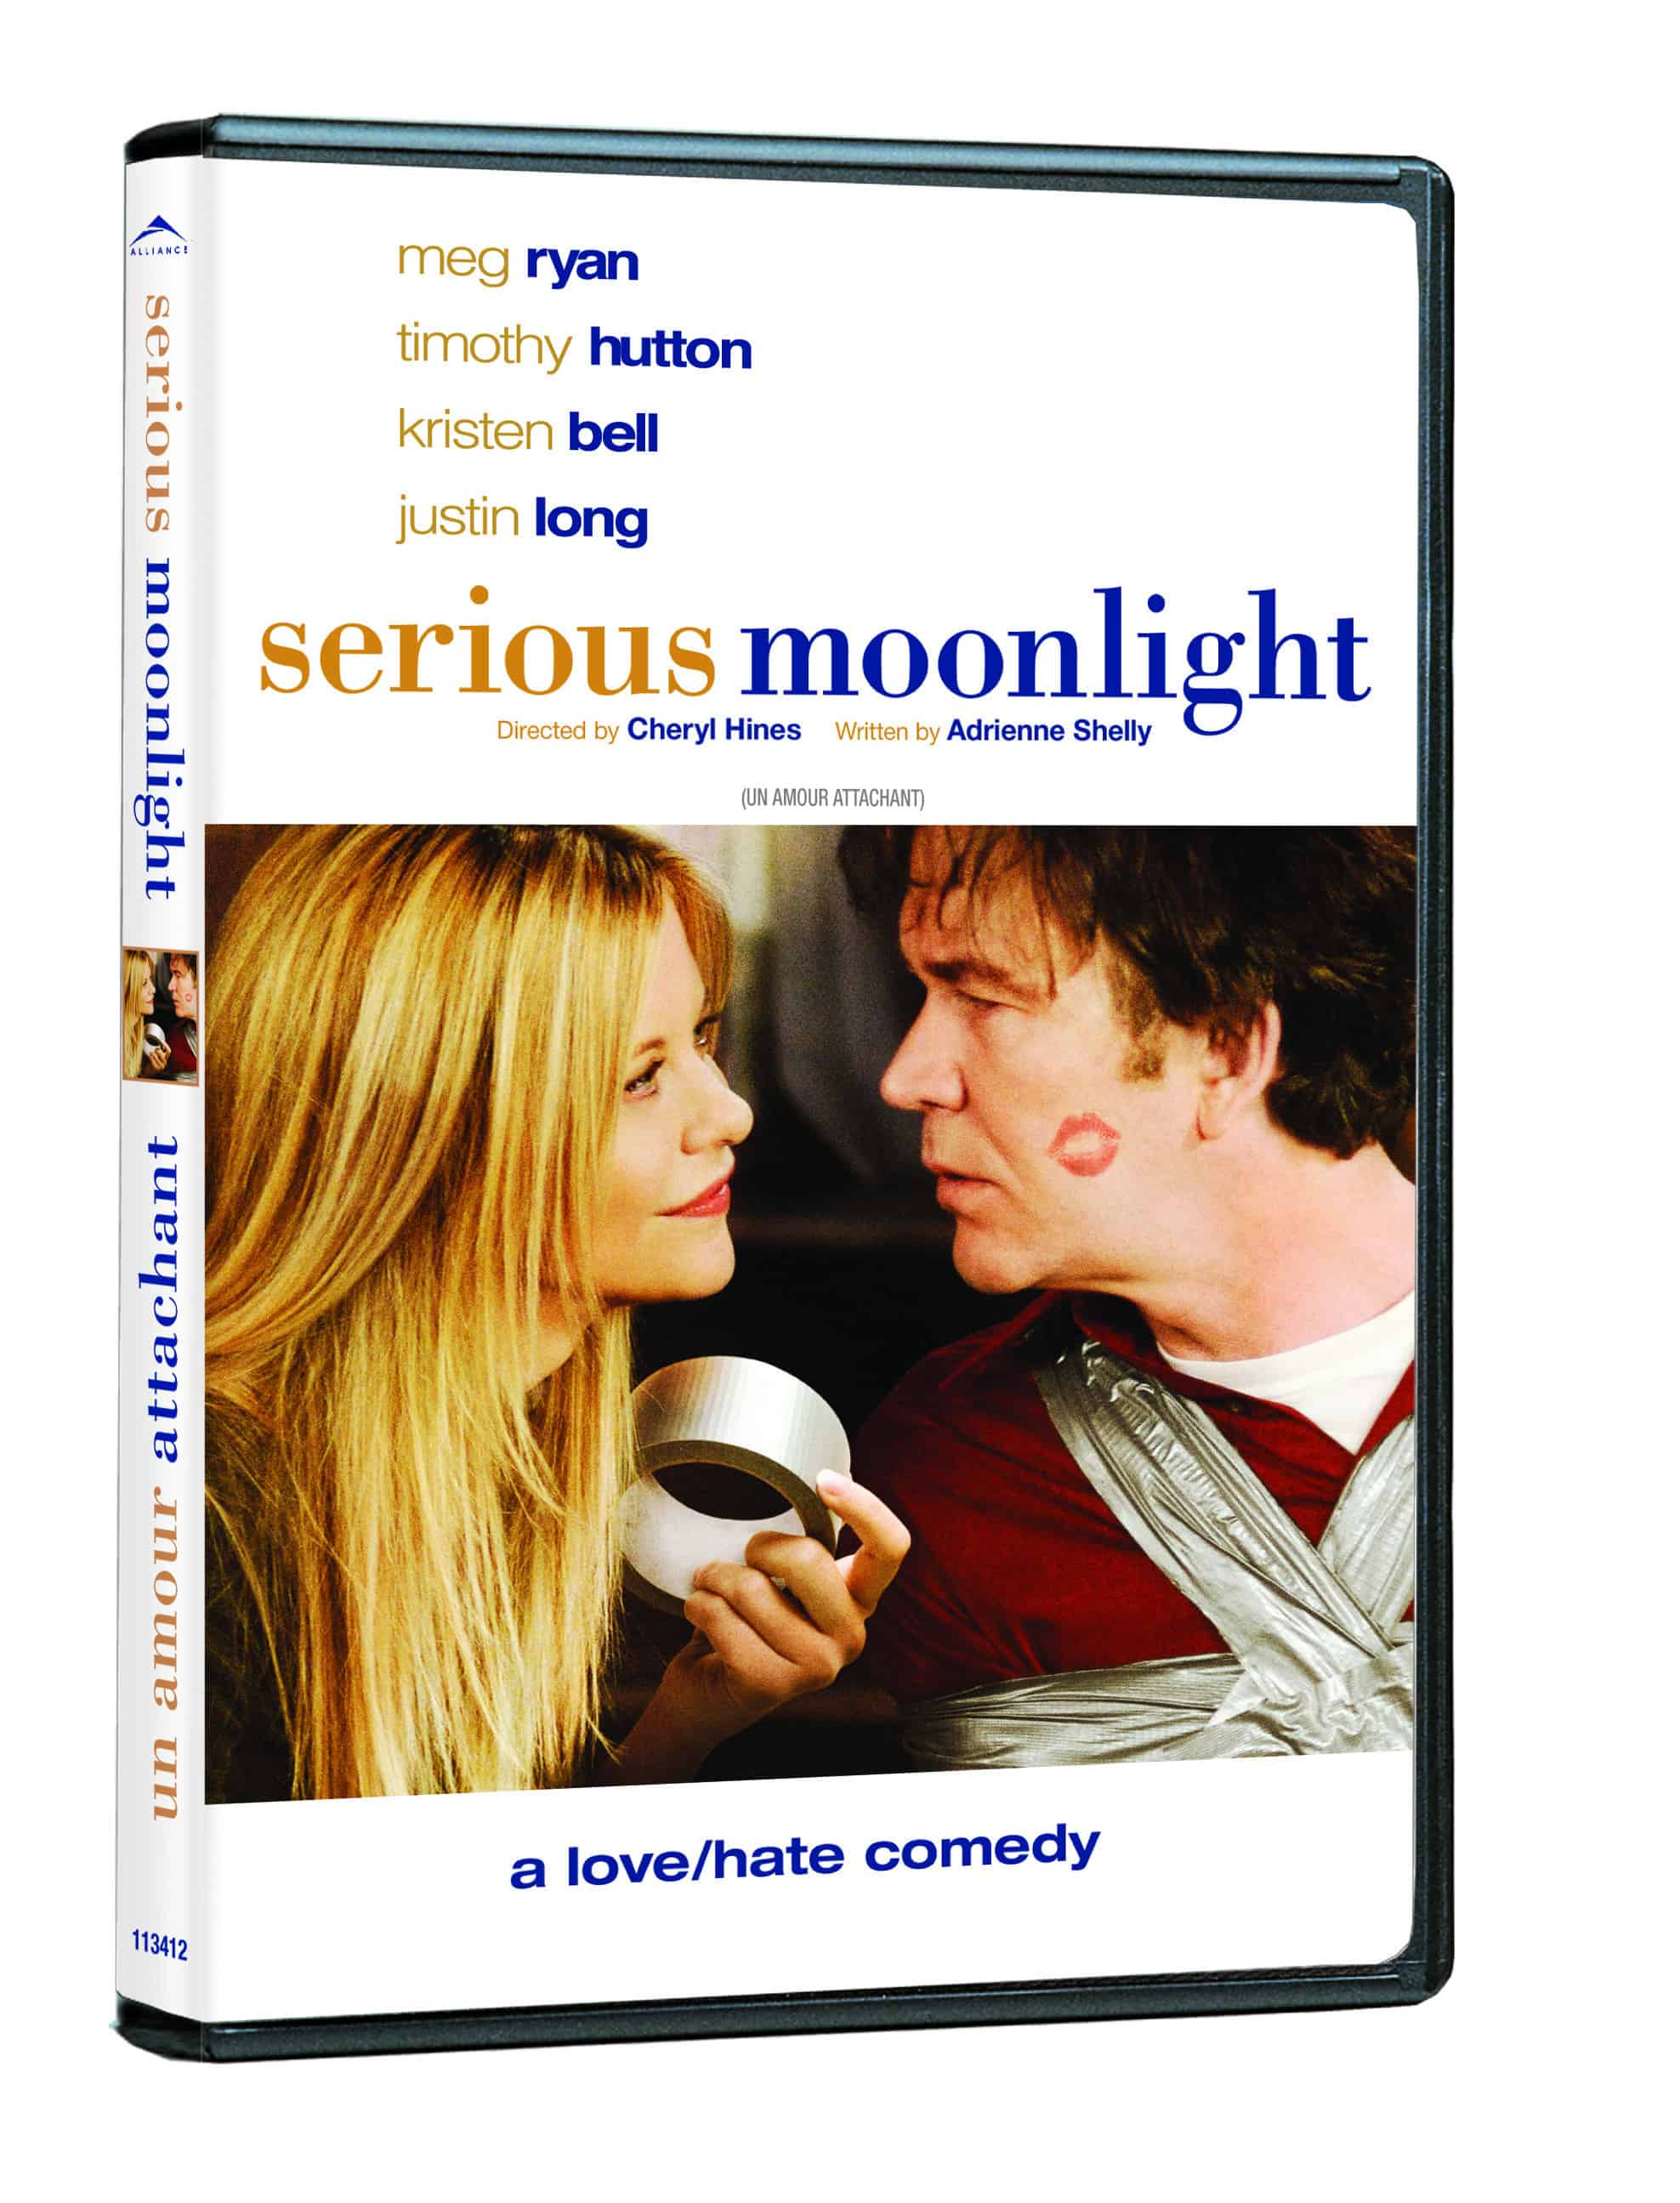 Serious_Moonlight_3D_DVD_eng - My Organized Chaos